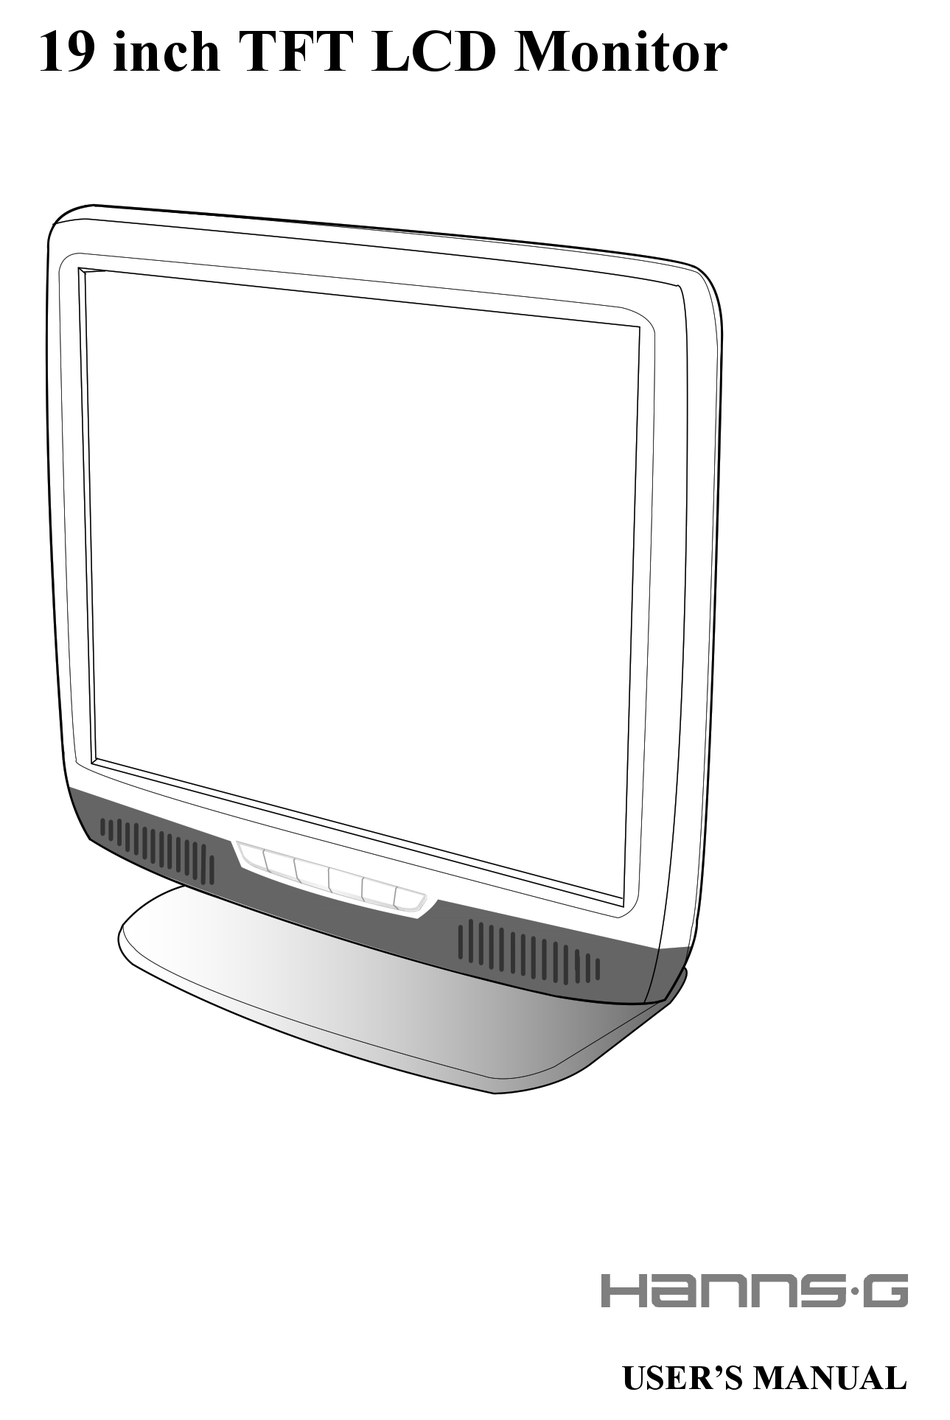 HANNS.G 19 INCH TFT LCD MONITOR USER MANUAL Pdf Download